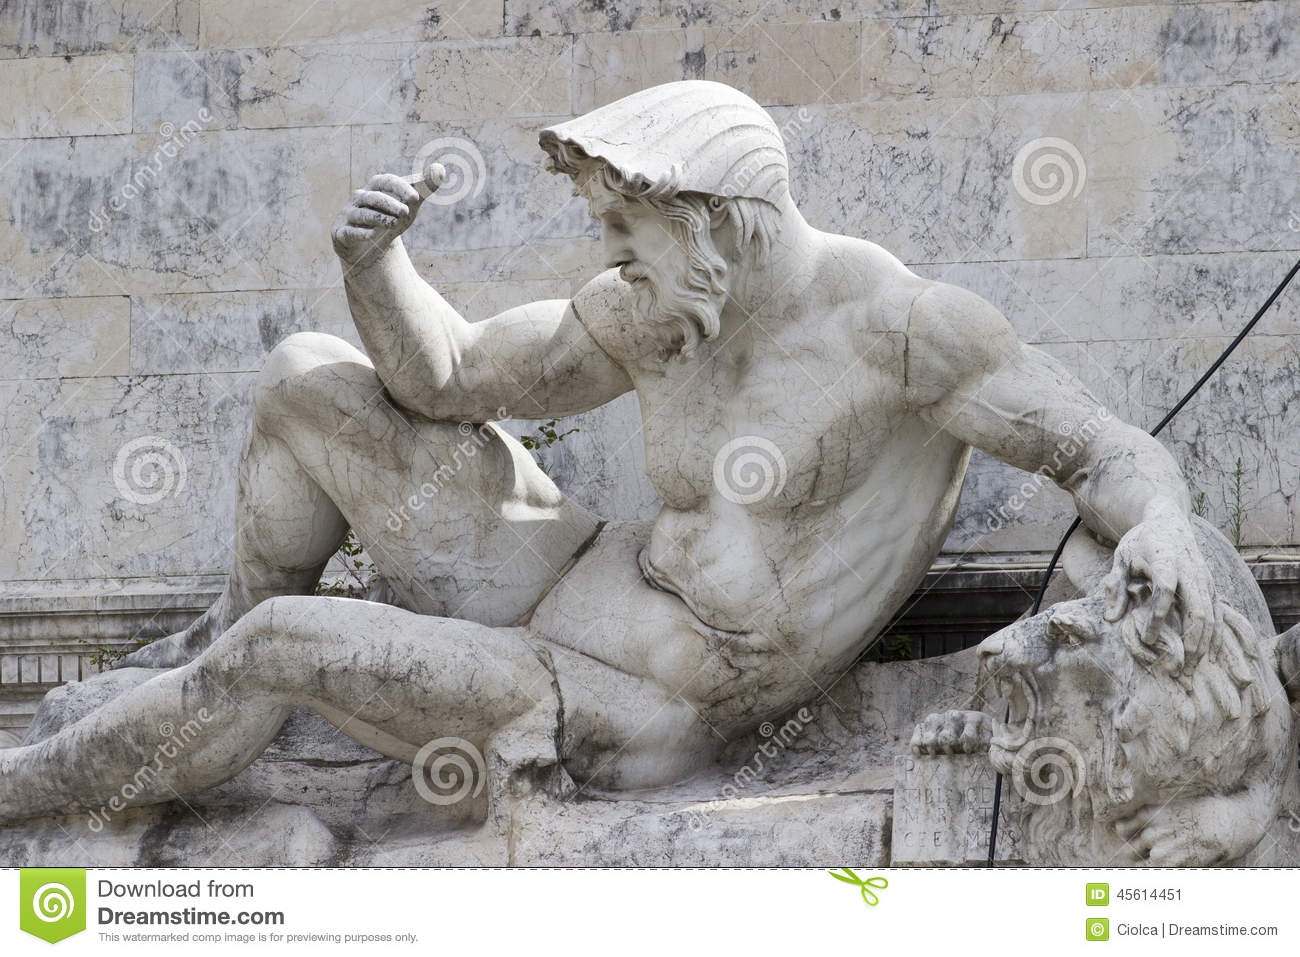 Cake Design Piazza Re Di Roma : Piazza Di Campidoglio, Rome Stock Photo CartoonDealer ...